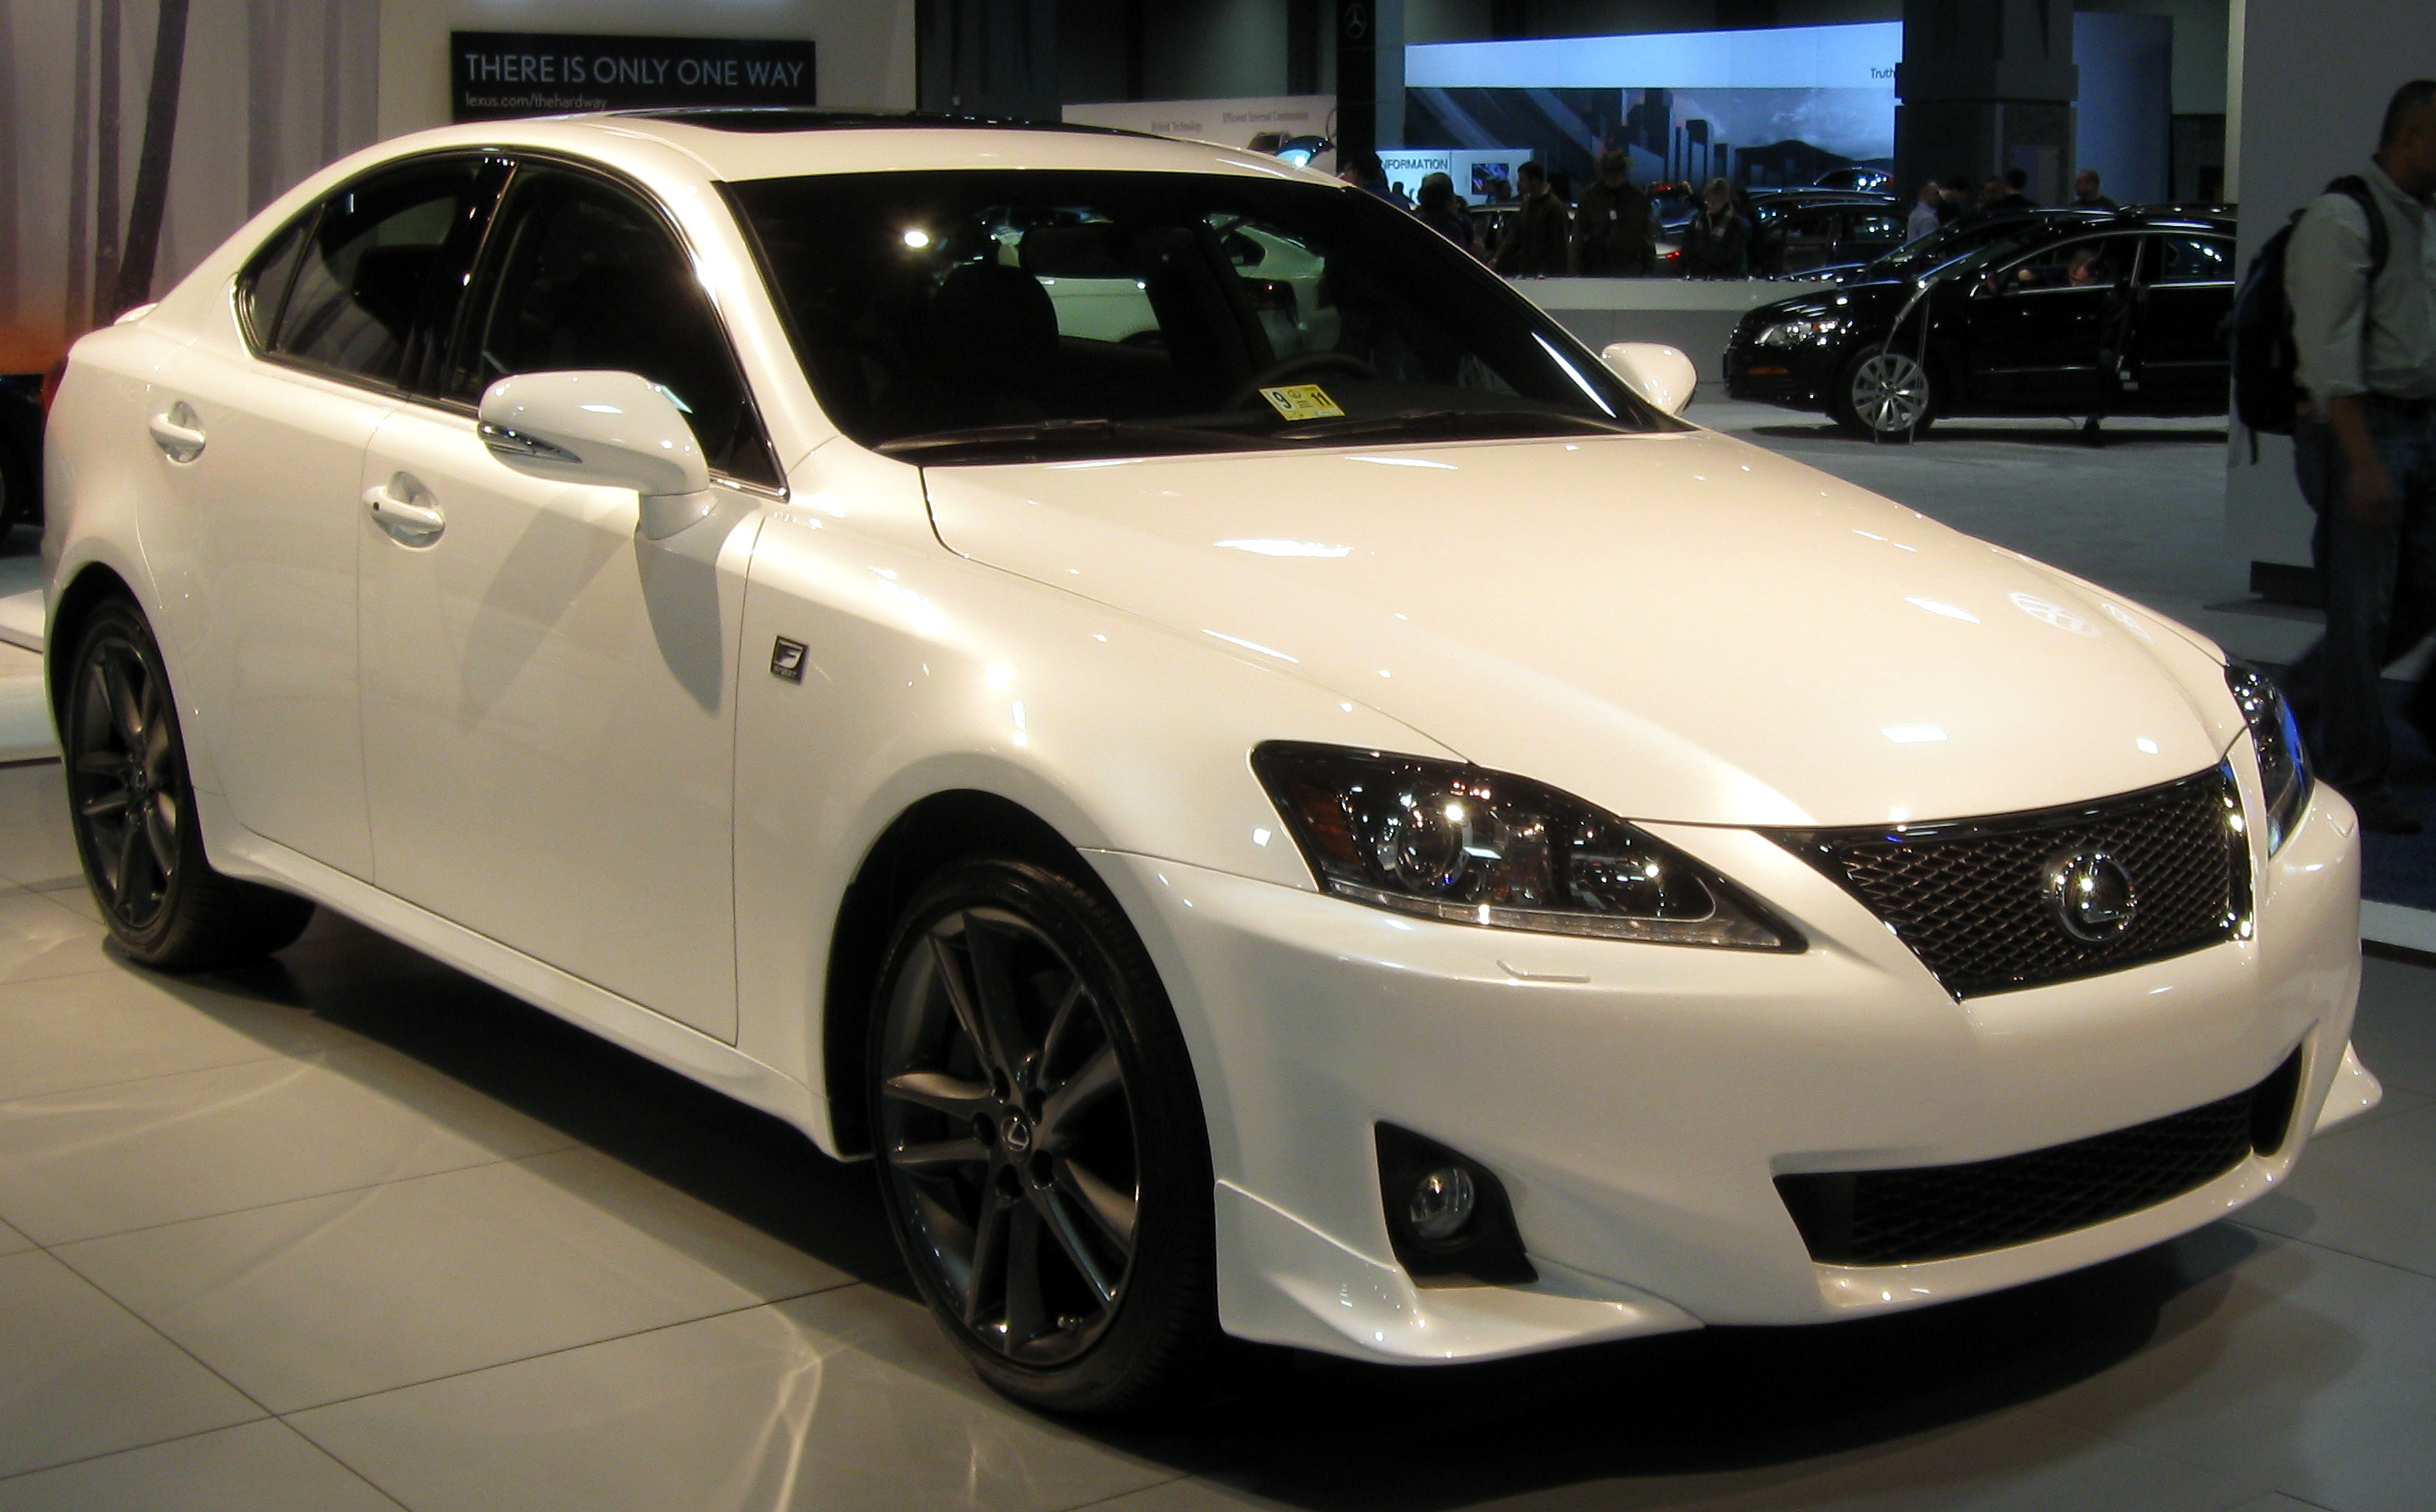 https://upload.wikimedia.org/wikipedia/commons/2/2b/2011_Lexus_IS350_F_Sport_--_2011_DC.jpg